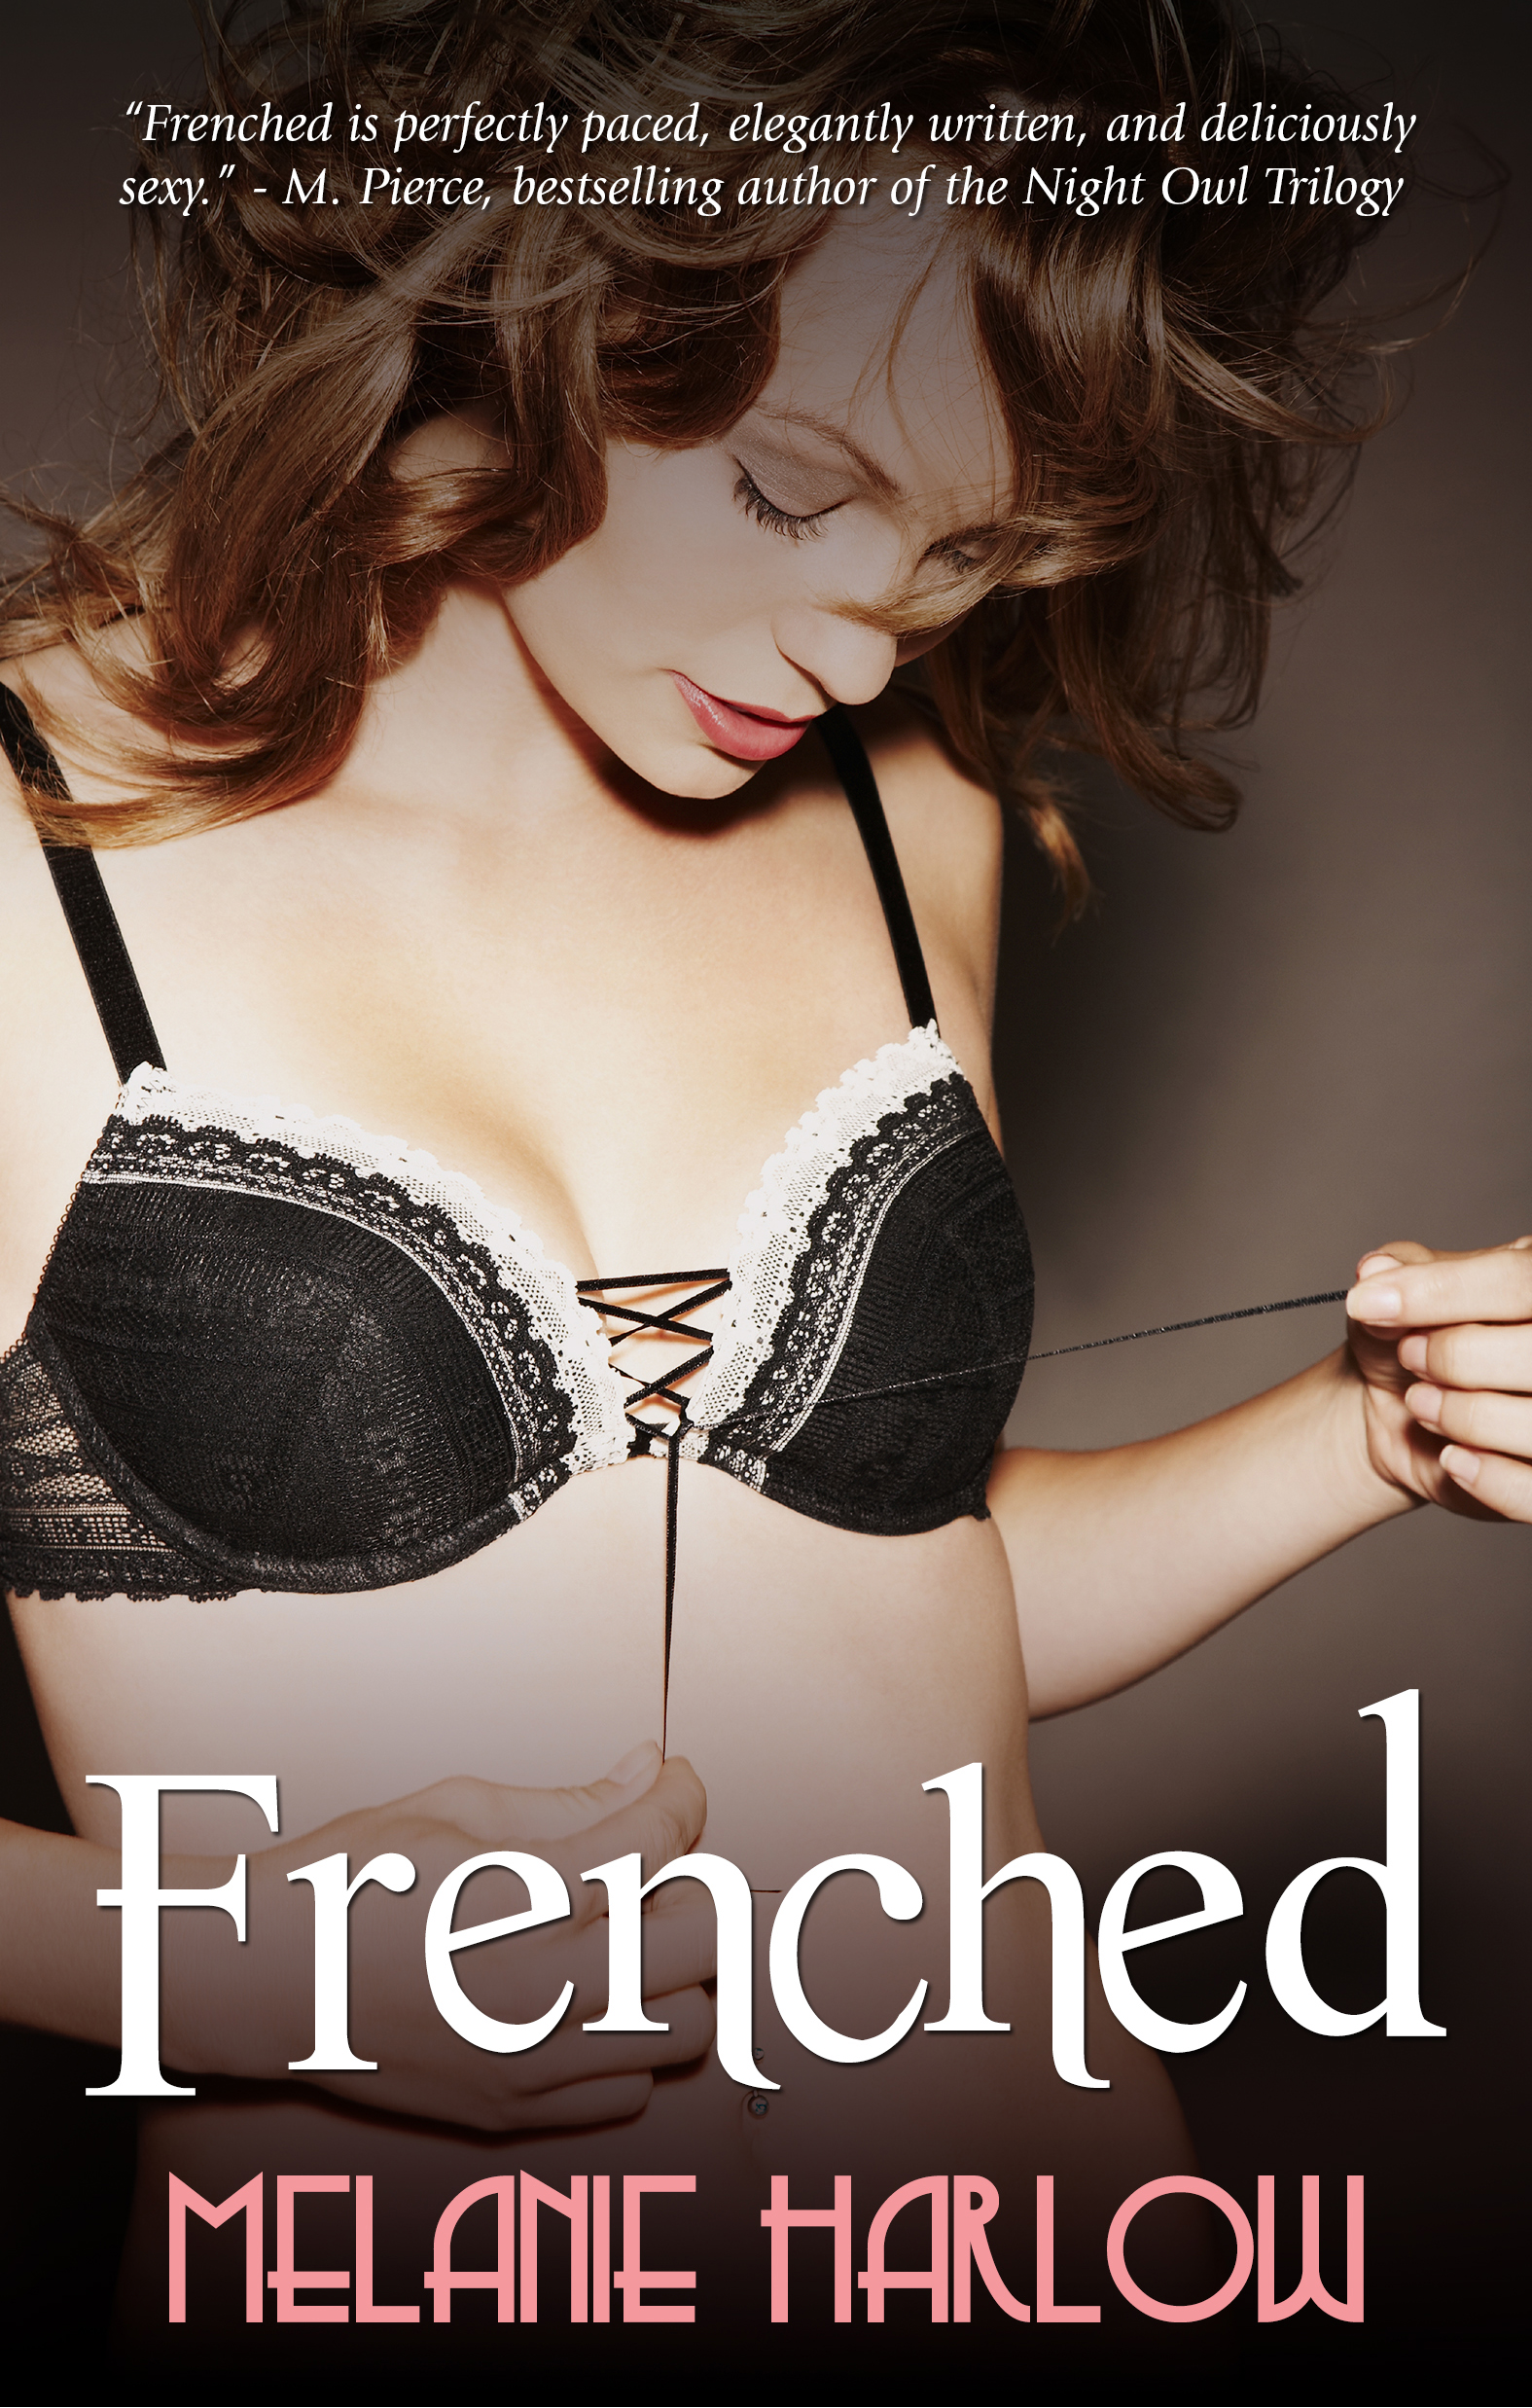 Blog Tour: Frenched by Melanie Harlow Review & Giveaway!